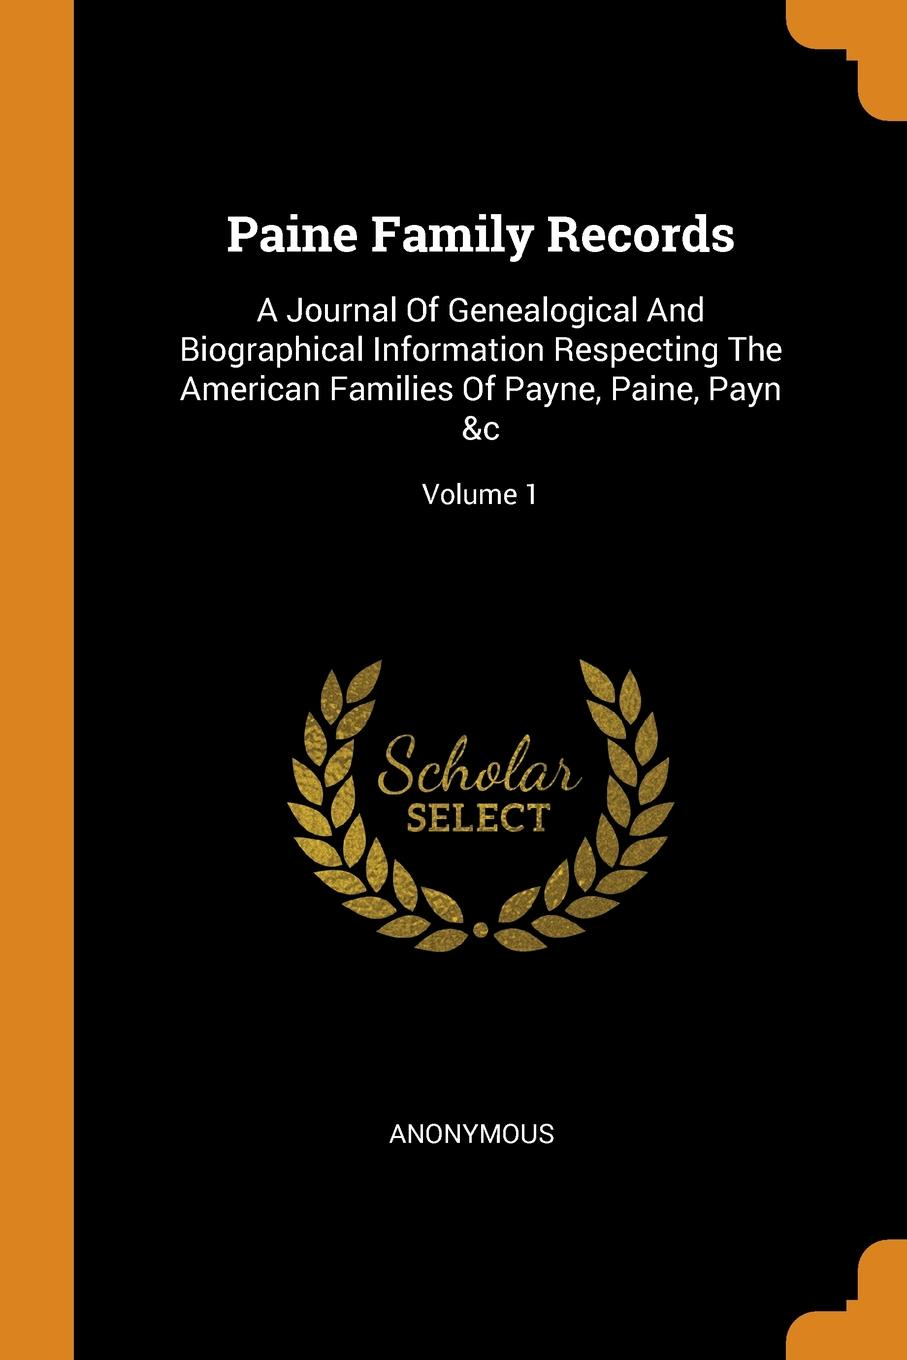 Paine Family Records. A Journal Of Genealogical And Biographical Information Respecting The American Families Of Payne, Paine, Payn .c; Volume 1